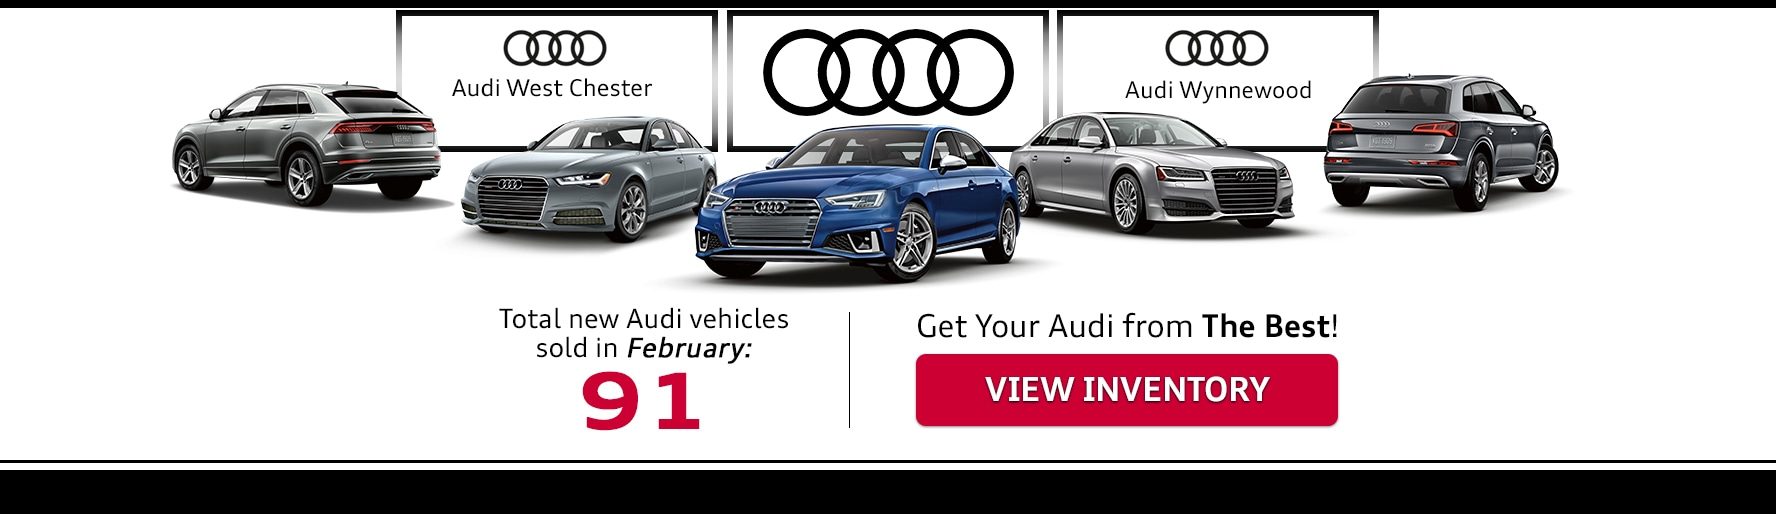 welcome to audi west chester | pennsylvania audi dealer